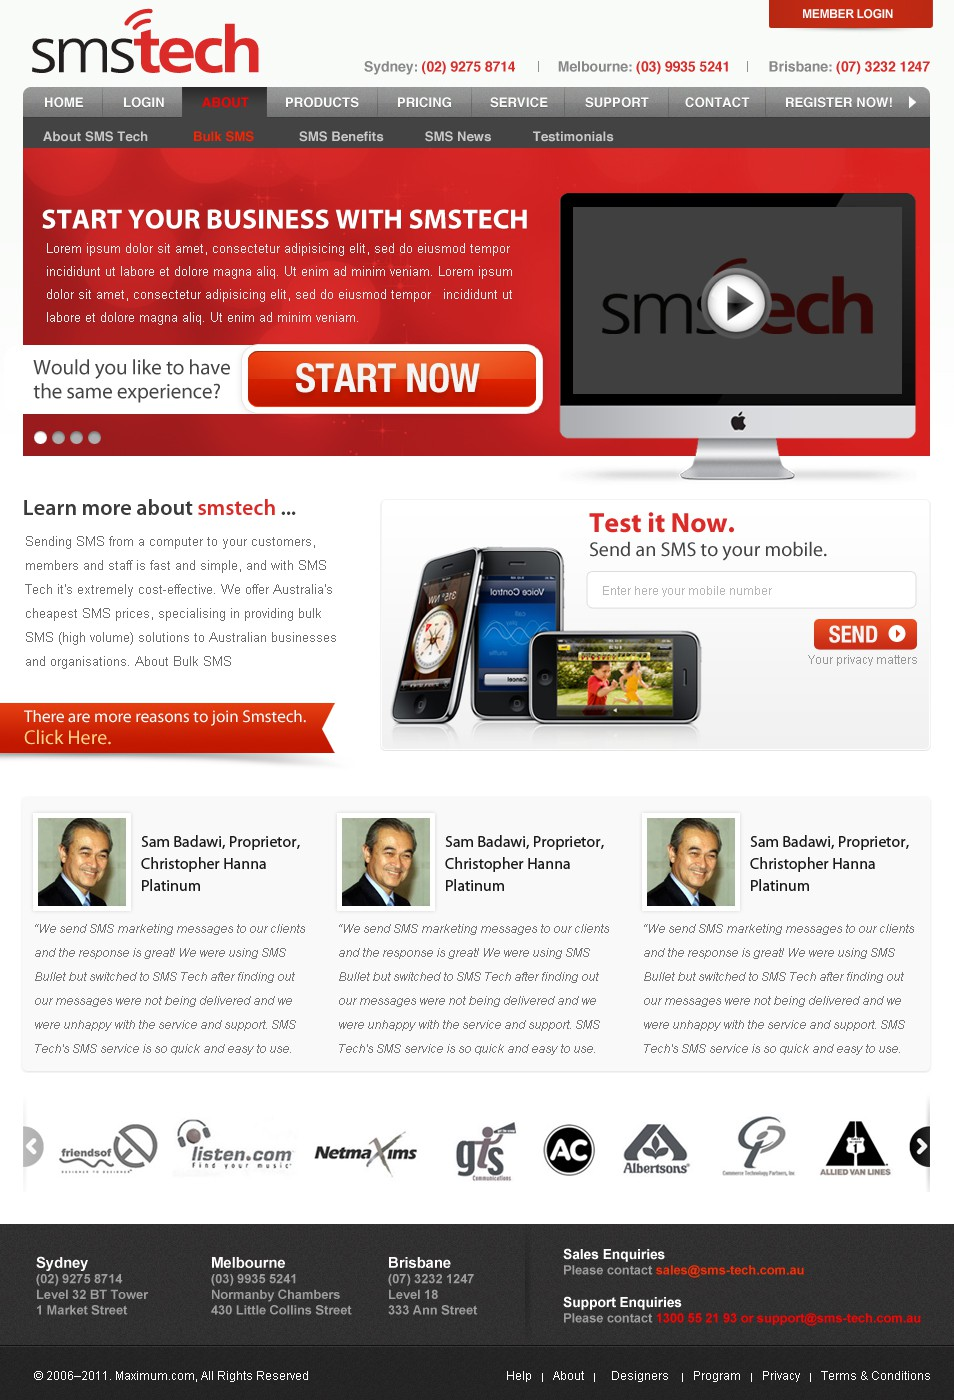 SMS Tech needs a new template design & amendment to the homepage.